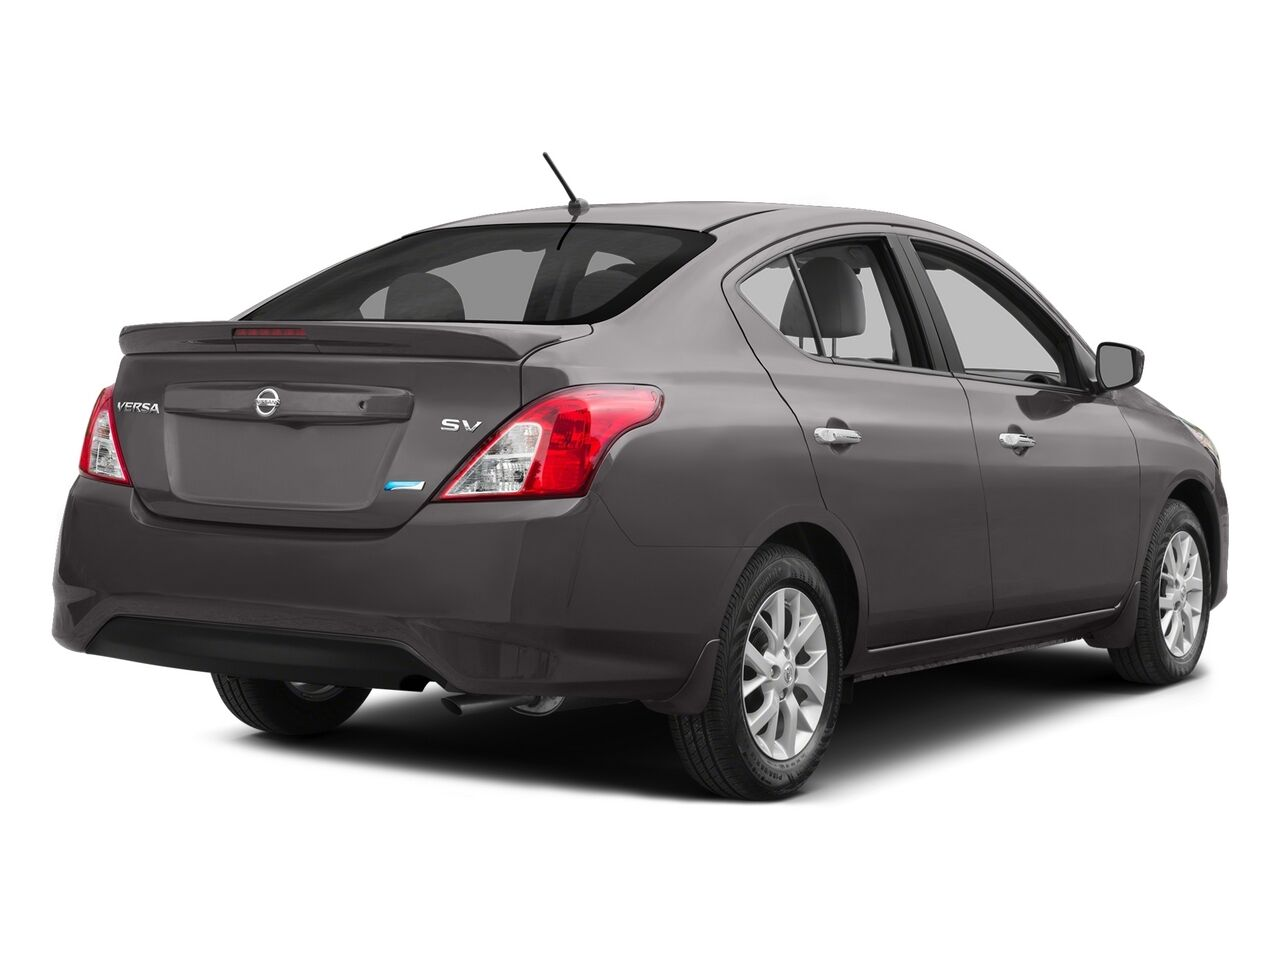 2015 Nissan Versa 1.6 SV Sedan Lee's Summit MO